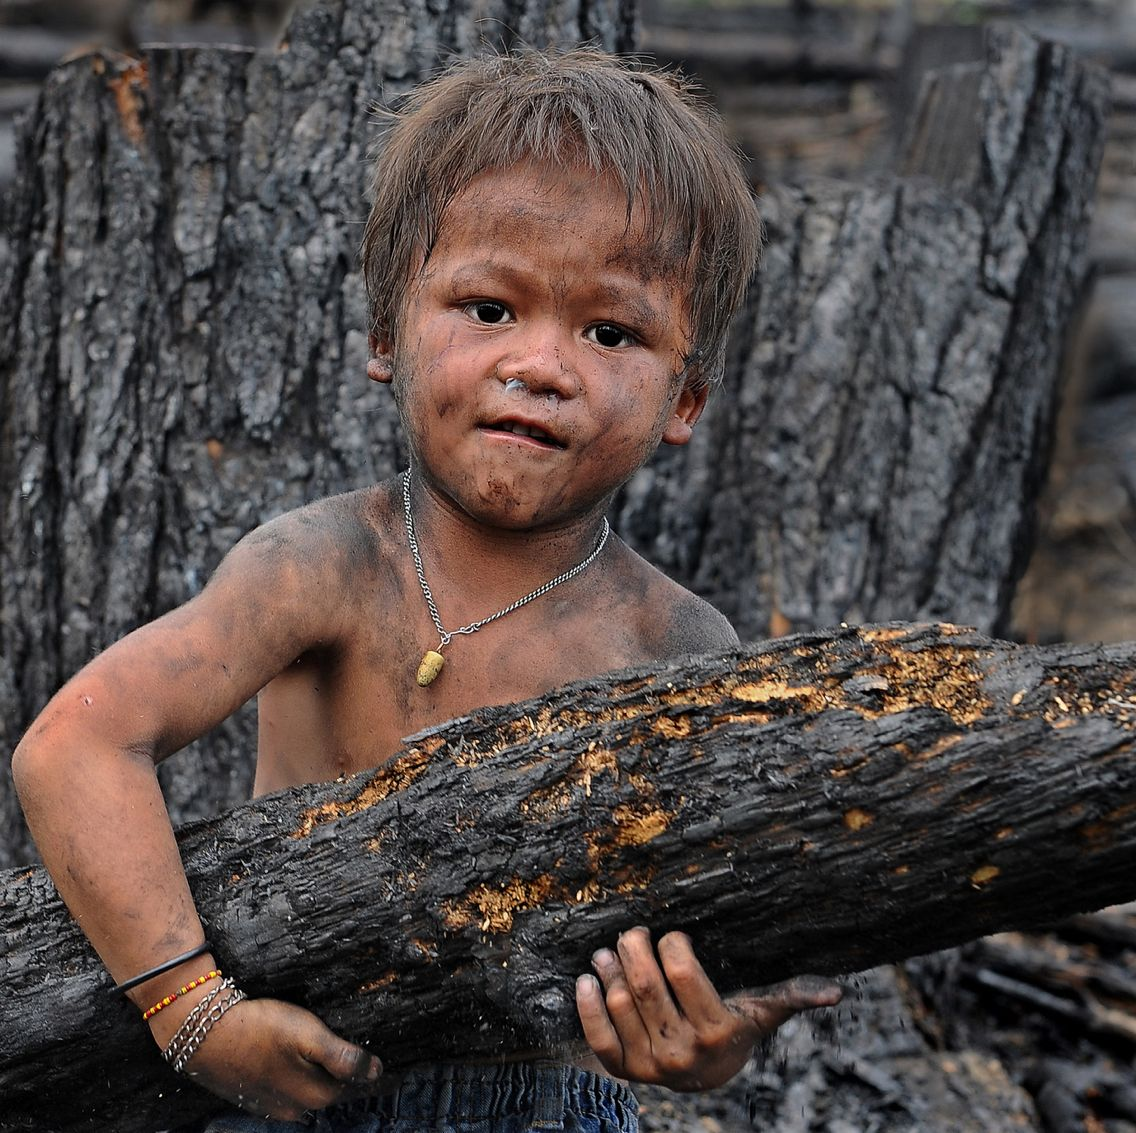 Pin On Amazing Kids Essay About Child Labour In India 200 Word English Wikipedia